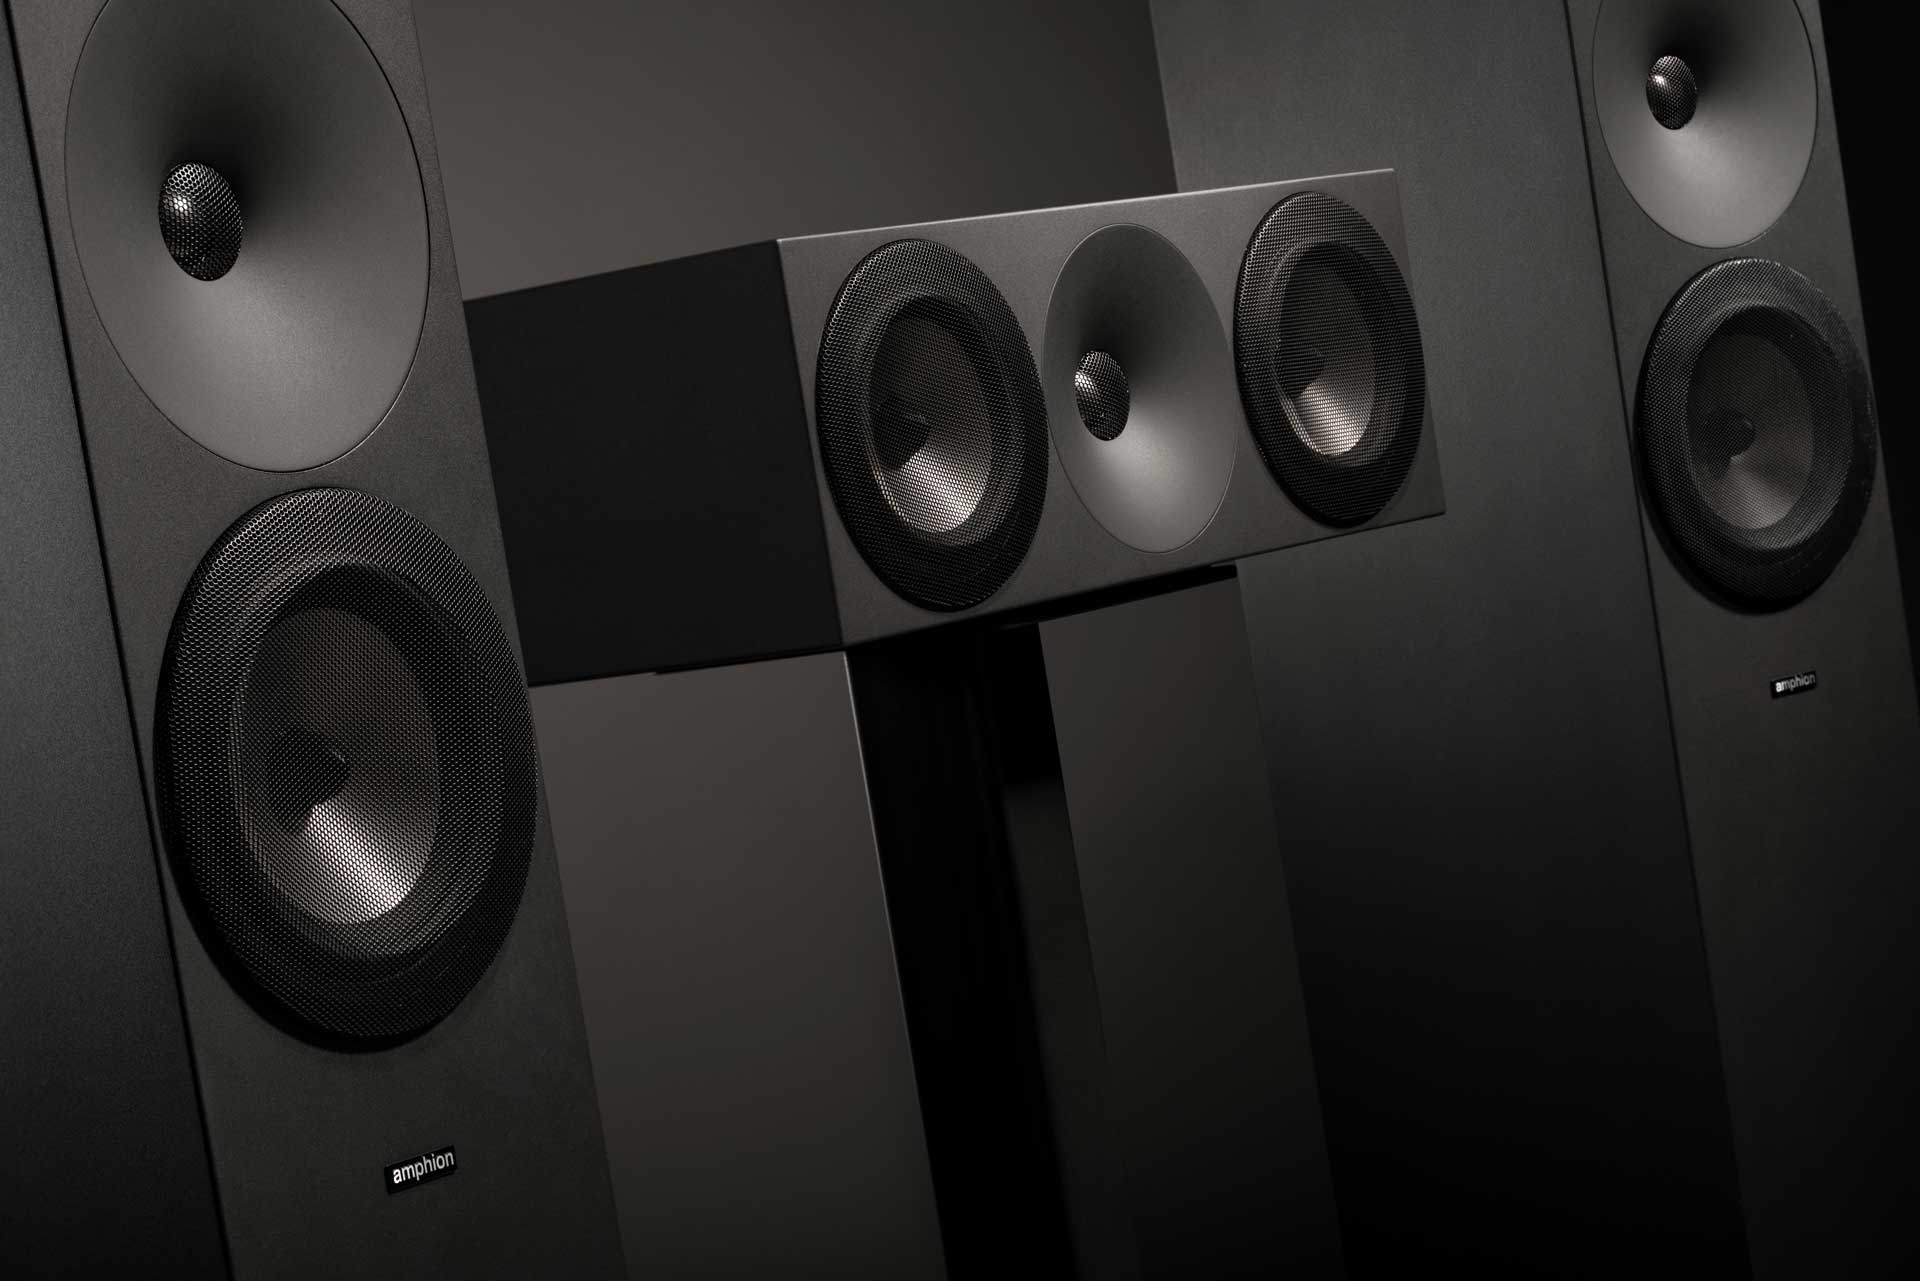 Amphion &#8211; <del>Coming Soon</del> Available Now